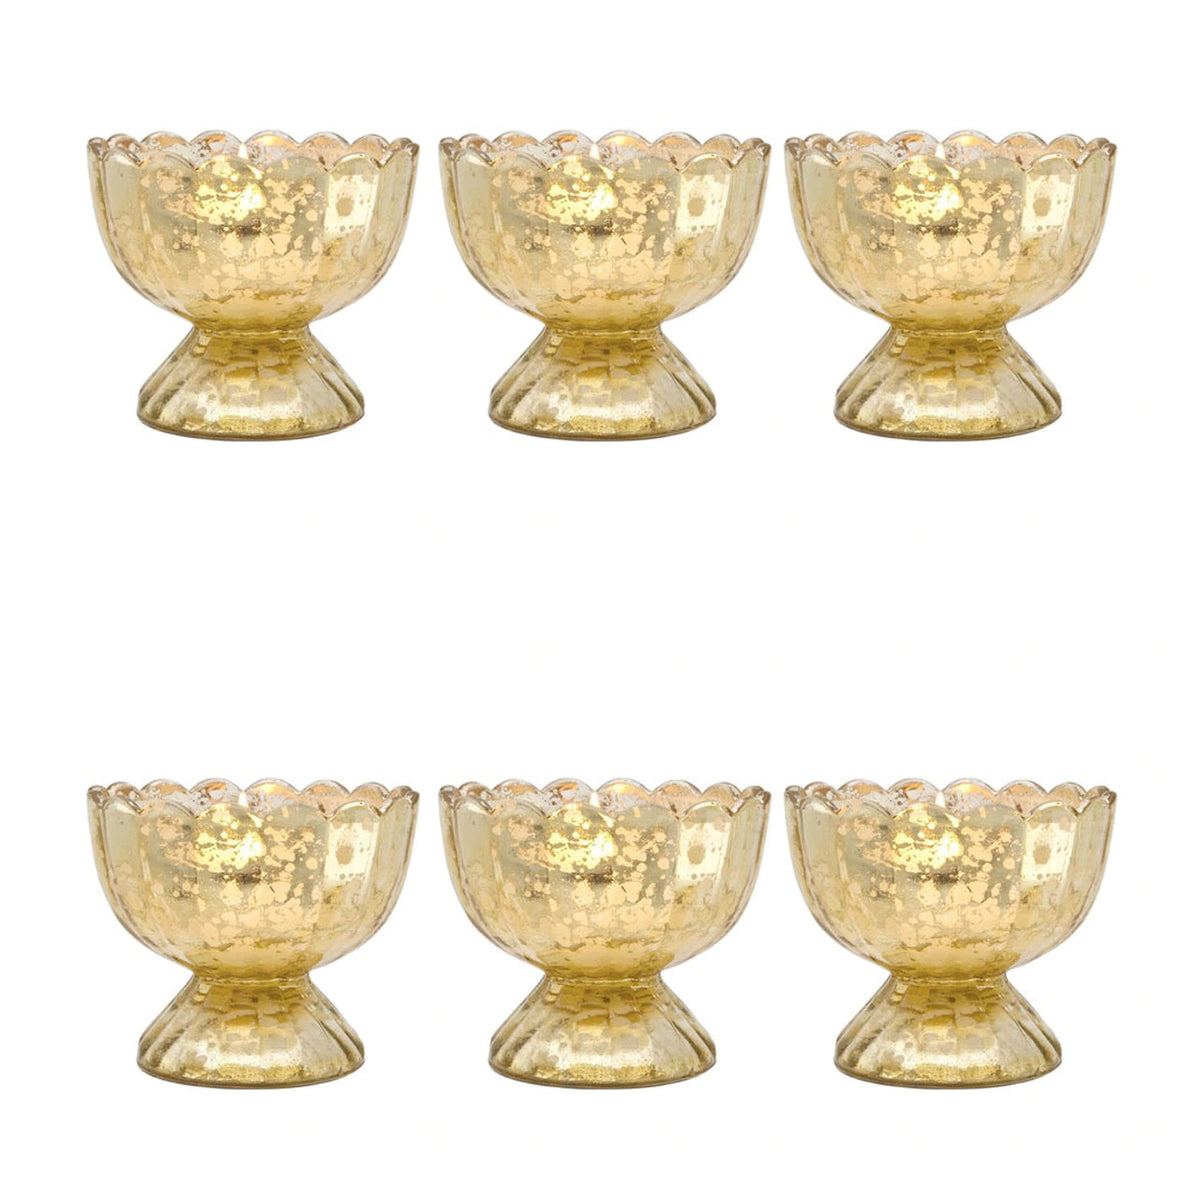 6 Pack | Vintage Mercury Glass Chalice Candle Holders (3-Inch, Suzanne Design, Sundae Cup Motif, Gold) - For Use with Tea Lights - PaperLanternStore.com - Paper Lanterns, Decor, Party Lights & More